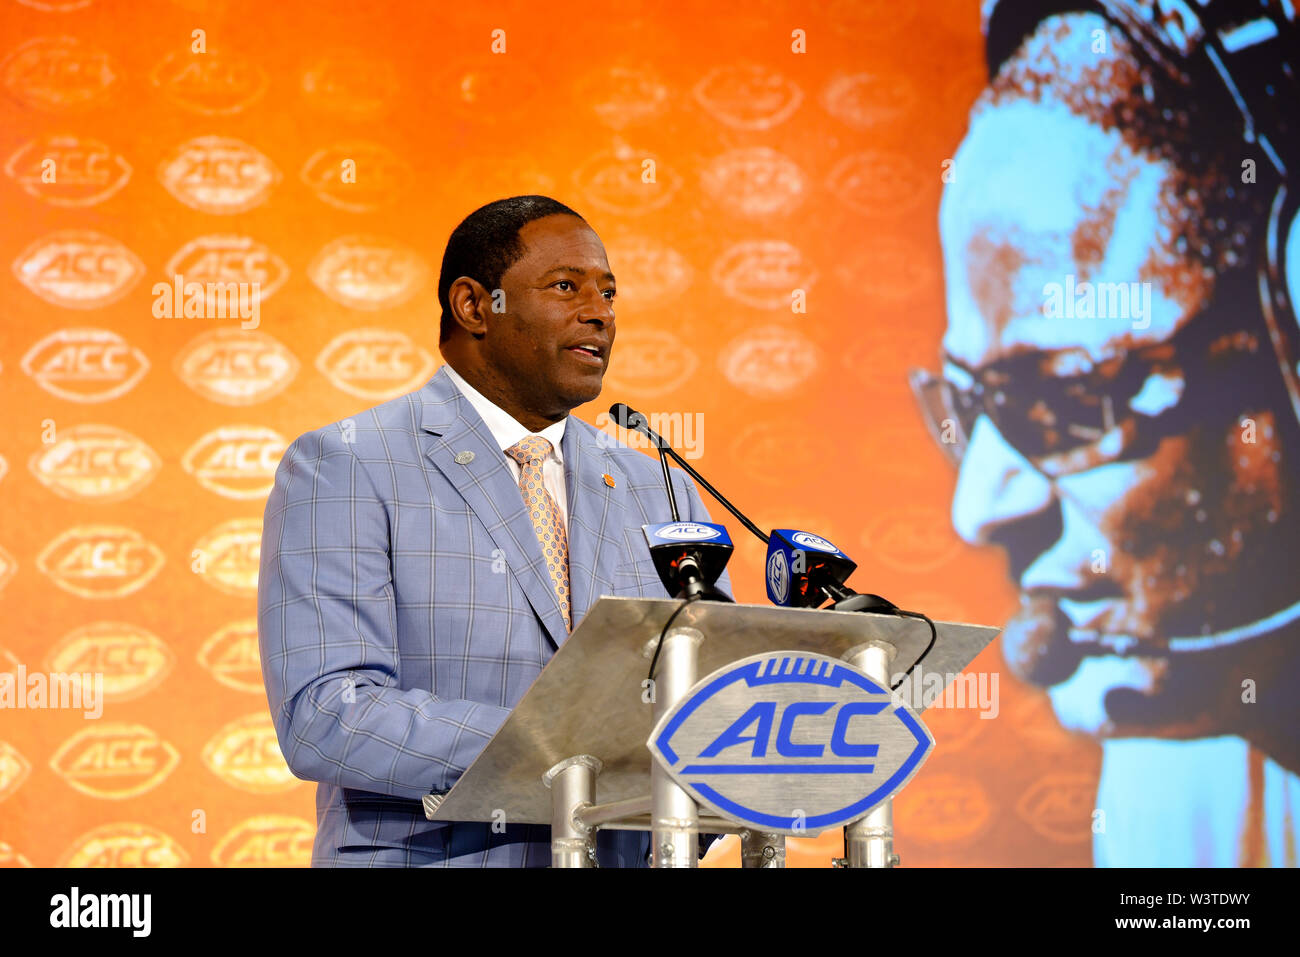 Charlotte, North Carolina, USA. 17th July, 2019. Syracuse Head Coach DINO BABERS speaking to reporters during the ACC Atlantic Division Coach/Student interviews on July 17, 2019 at the Westin Hotels & Resorts in Charlotte, N.C. Credit: Ed Clemente/ZUMA Wire/Alamy Live News - Stock Image